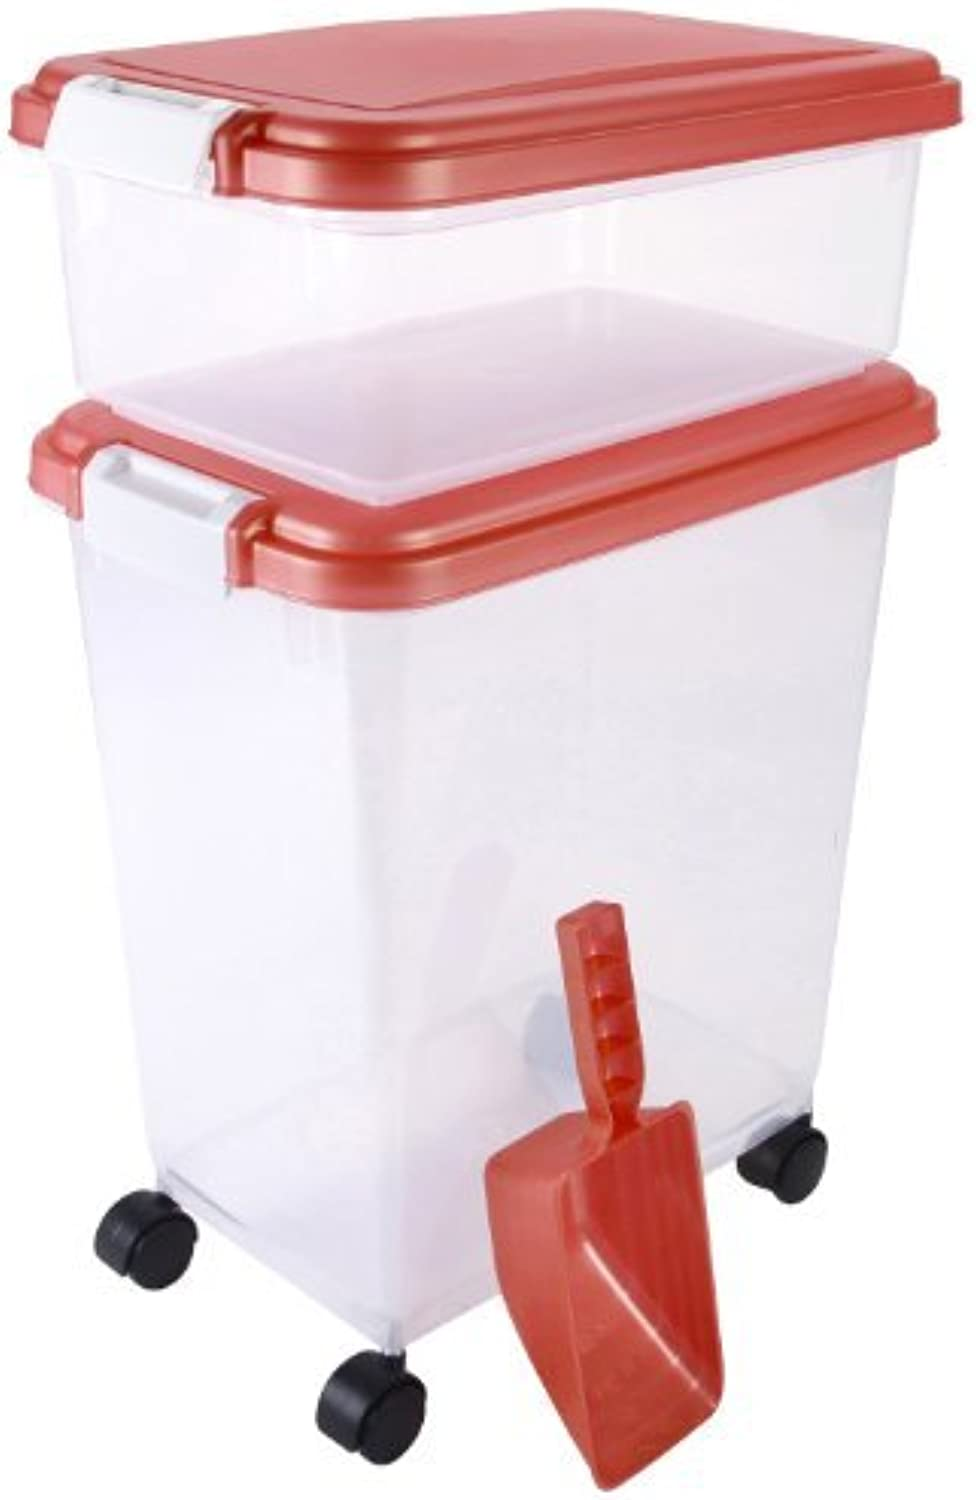 IRIS Airtight Combo Food Storage Container Set, Coral by IRIS USA, Inc.